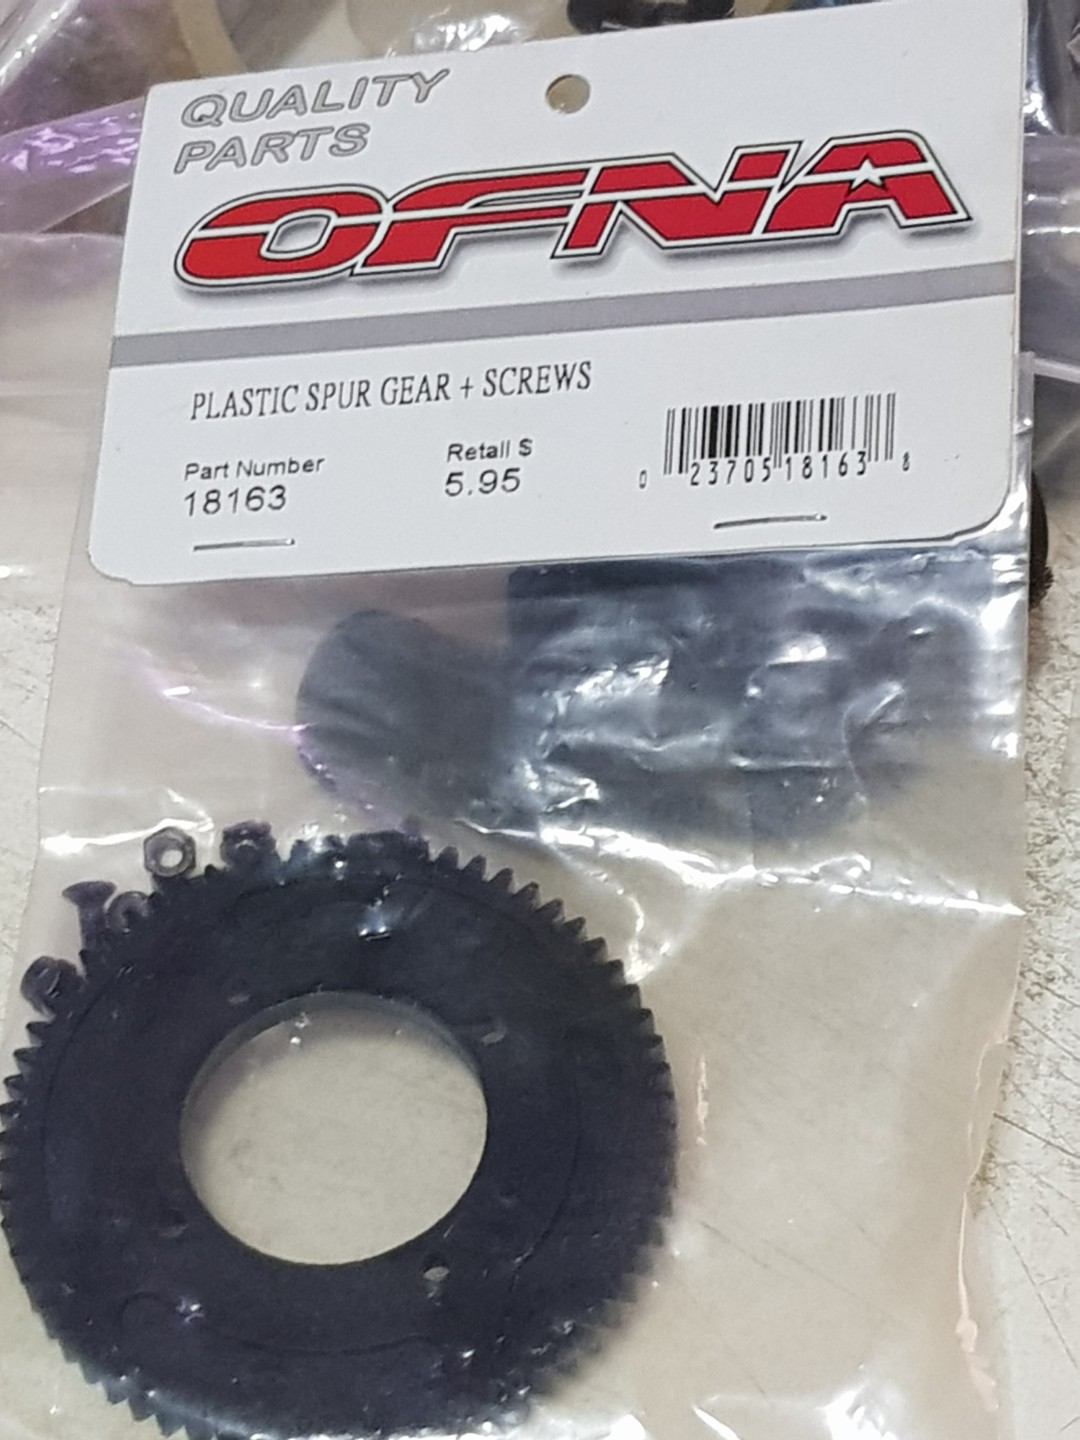 Hobao, Ofna, Hong Nor Pirate 8 Scale Monster Truck Drive Gear